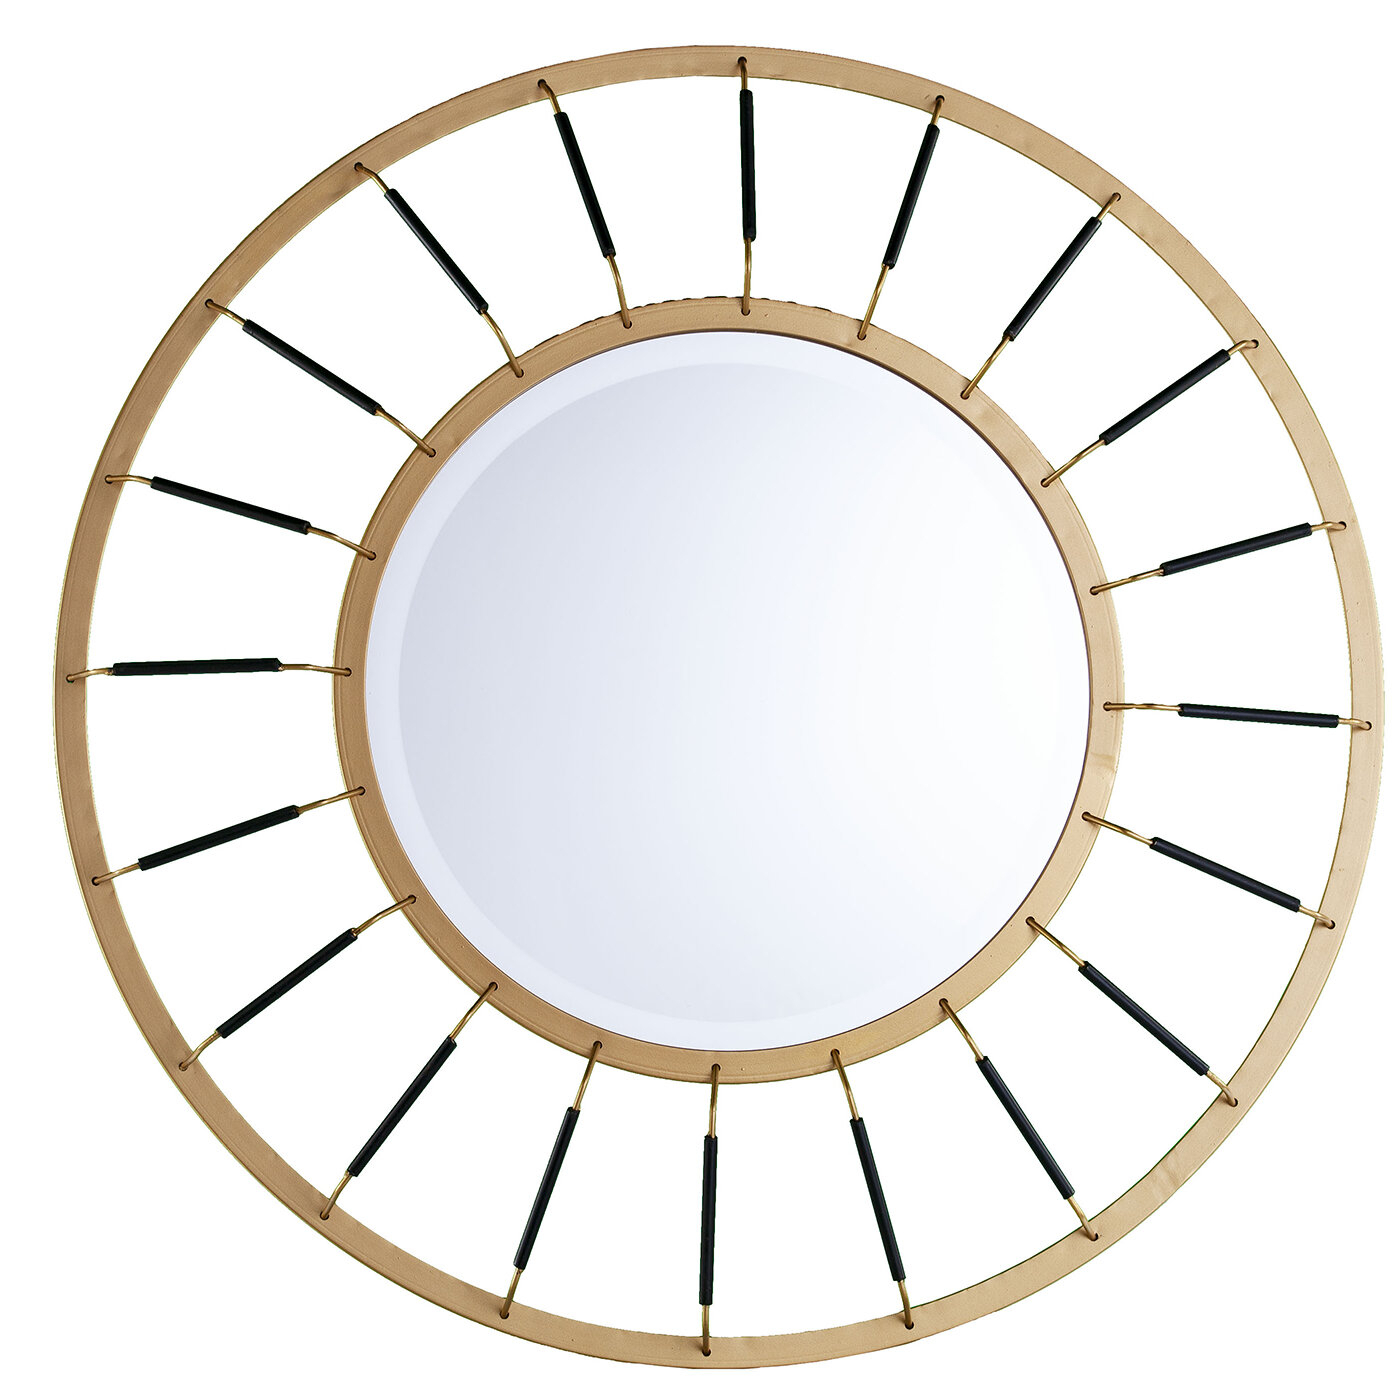 Maniscalco Round Decorative Modern Accent Mirror With Menachem Modern & Contemporary Accent Mirrors (Image 15 of 30)